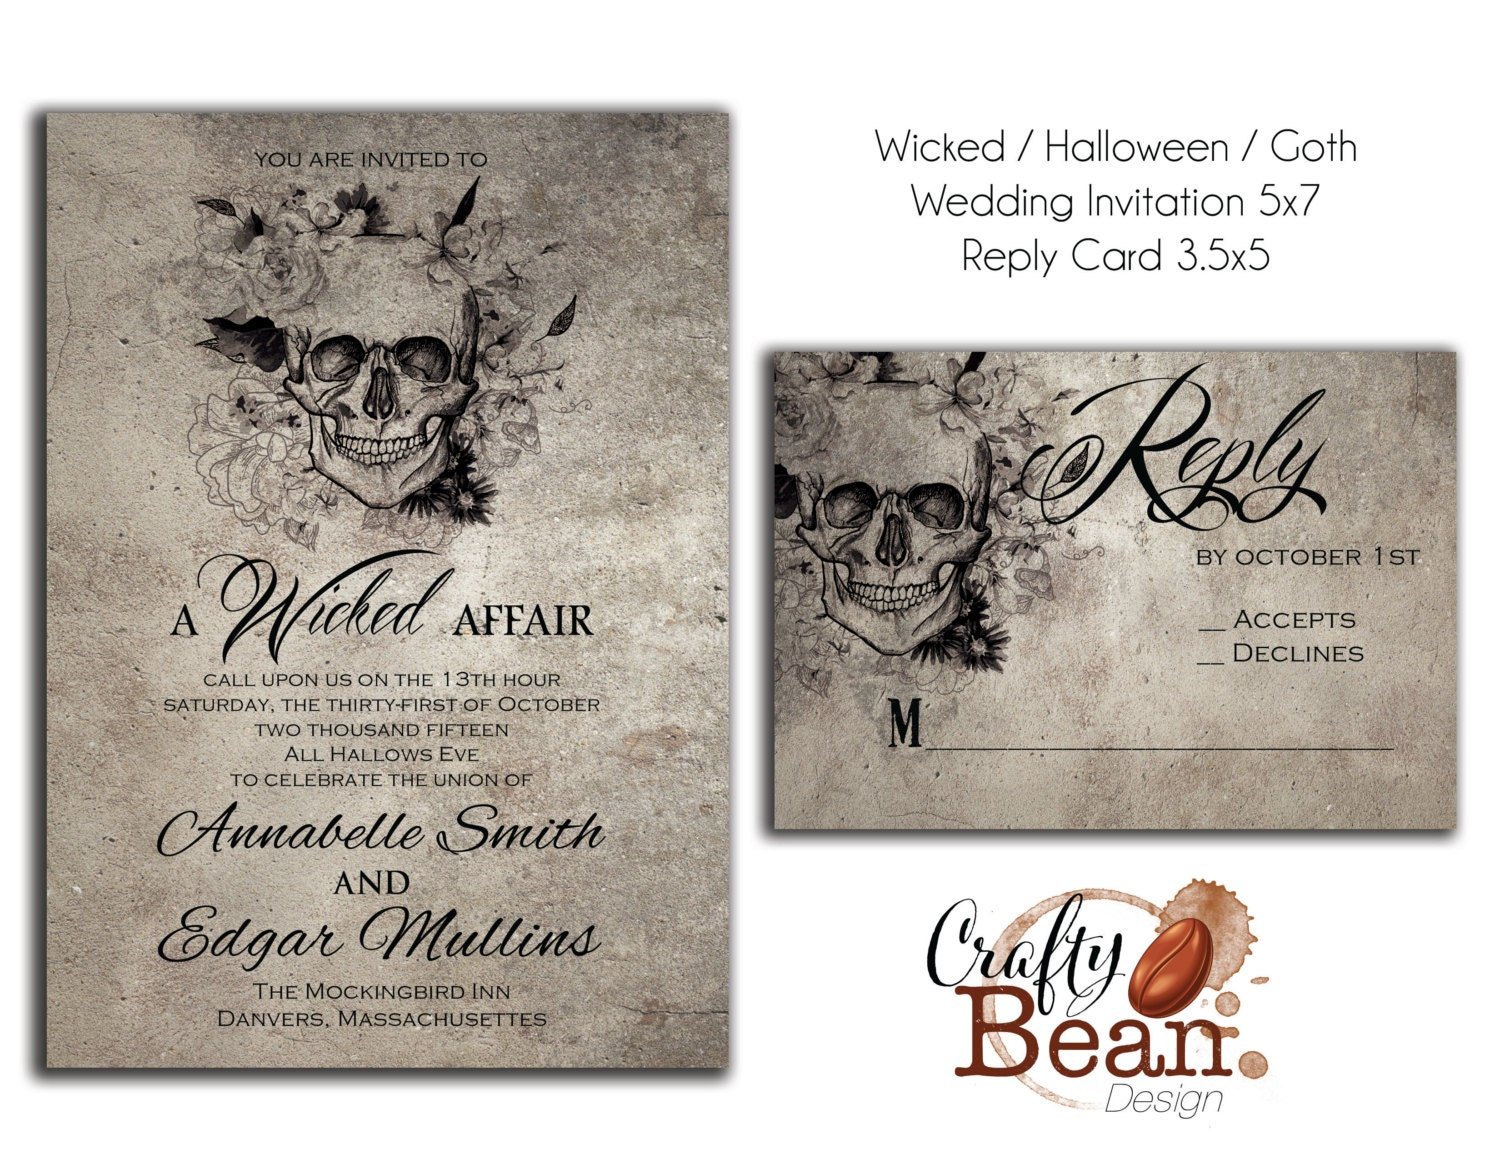 Halloween Wedding Invitation: Wicked / Halloween / Horror / Gothic Wedding Invitation DIY